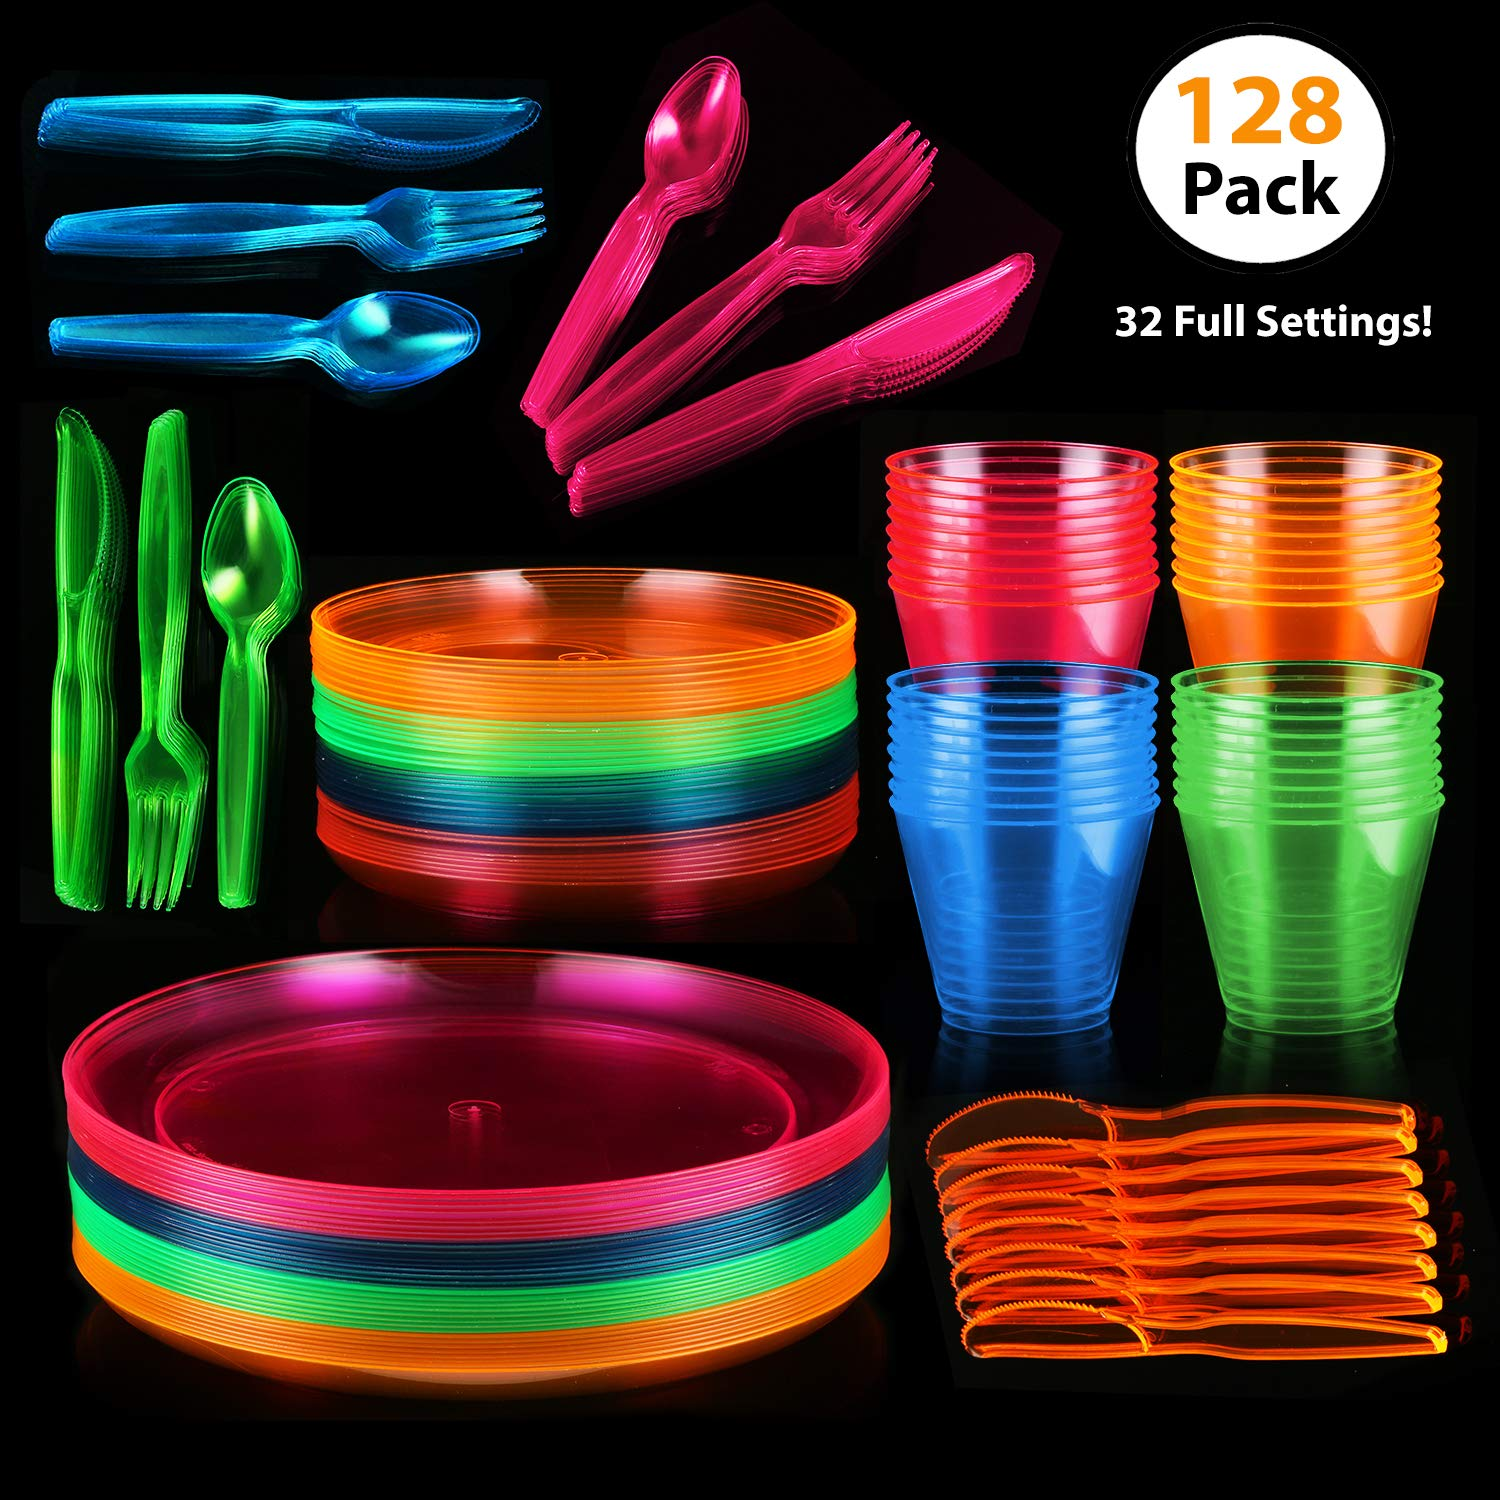 [32 Guest] Neon Party Supplies Set - Disposable & Heavy Duty, Includes: 32 Main Course 9 inch Plate, 6 inch Dessert Plates , 9-ounce Tumblers, Cutlery, Glow in the Dark Great for Blacklight UV Parties ChefCity